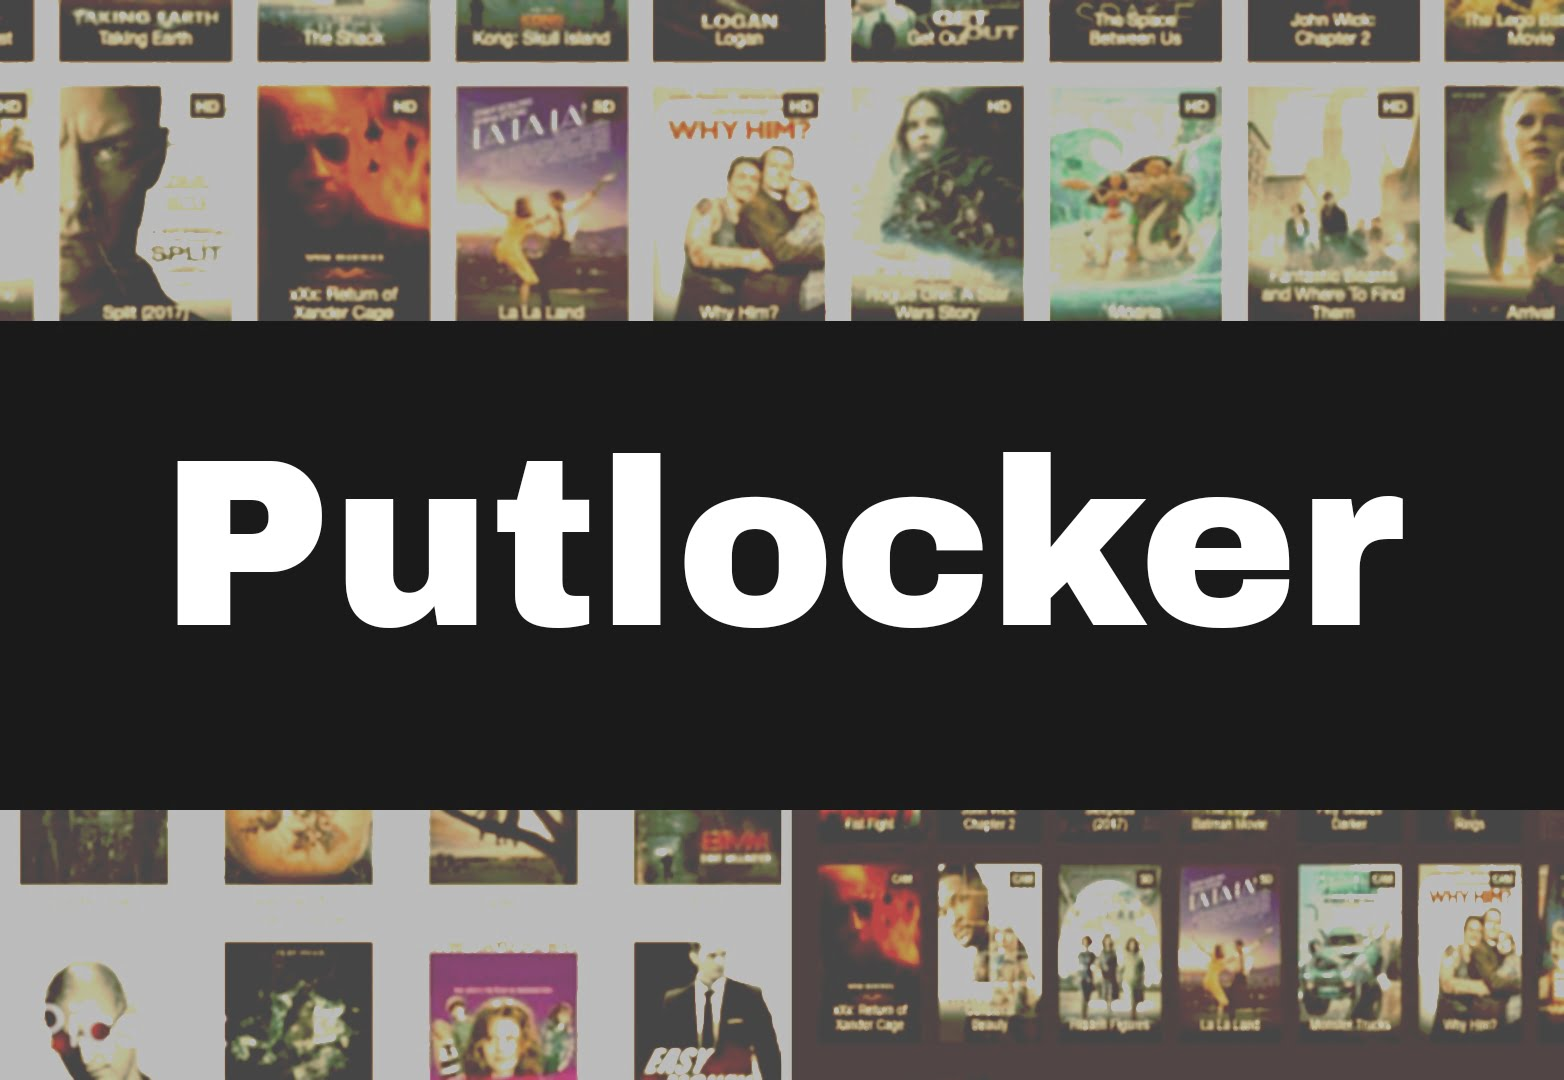 Putlocker 2021 – Piracy Illegal HD Movies Download Website